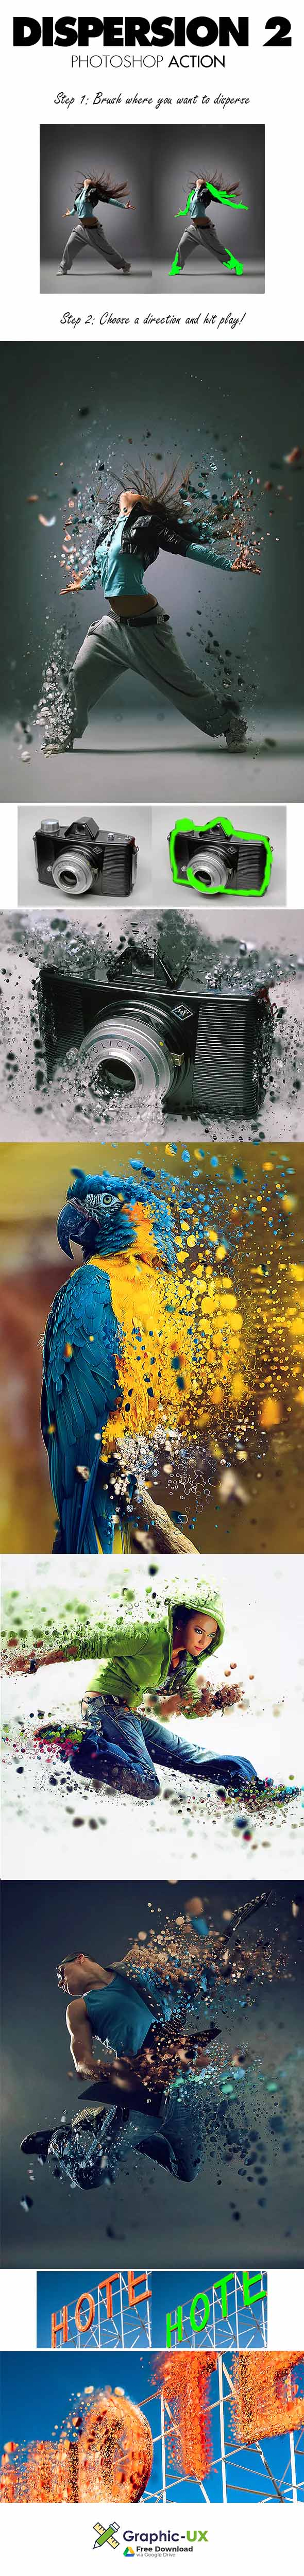 dispersion 2 photoshop action free download